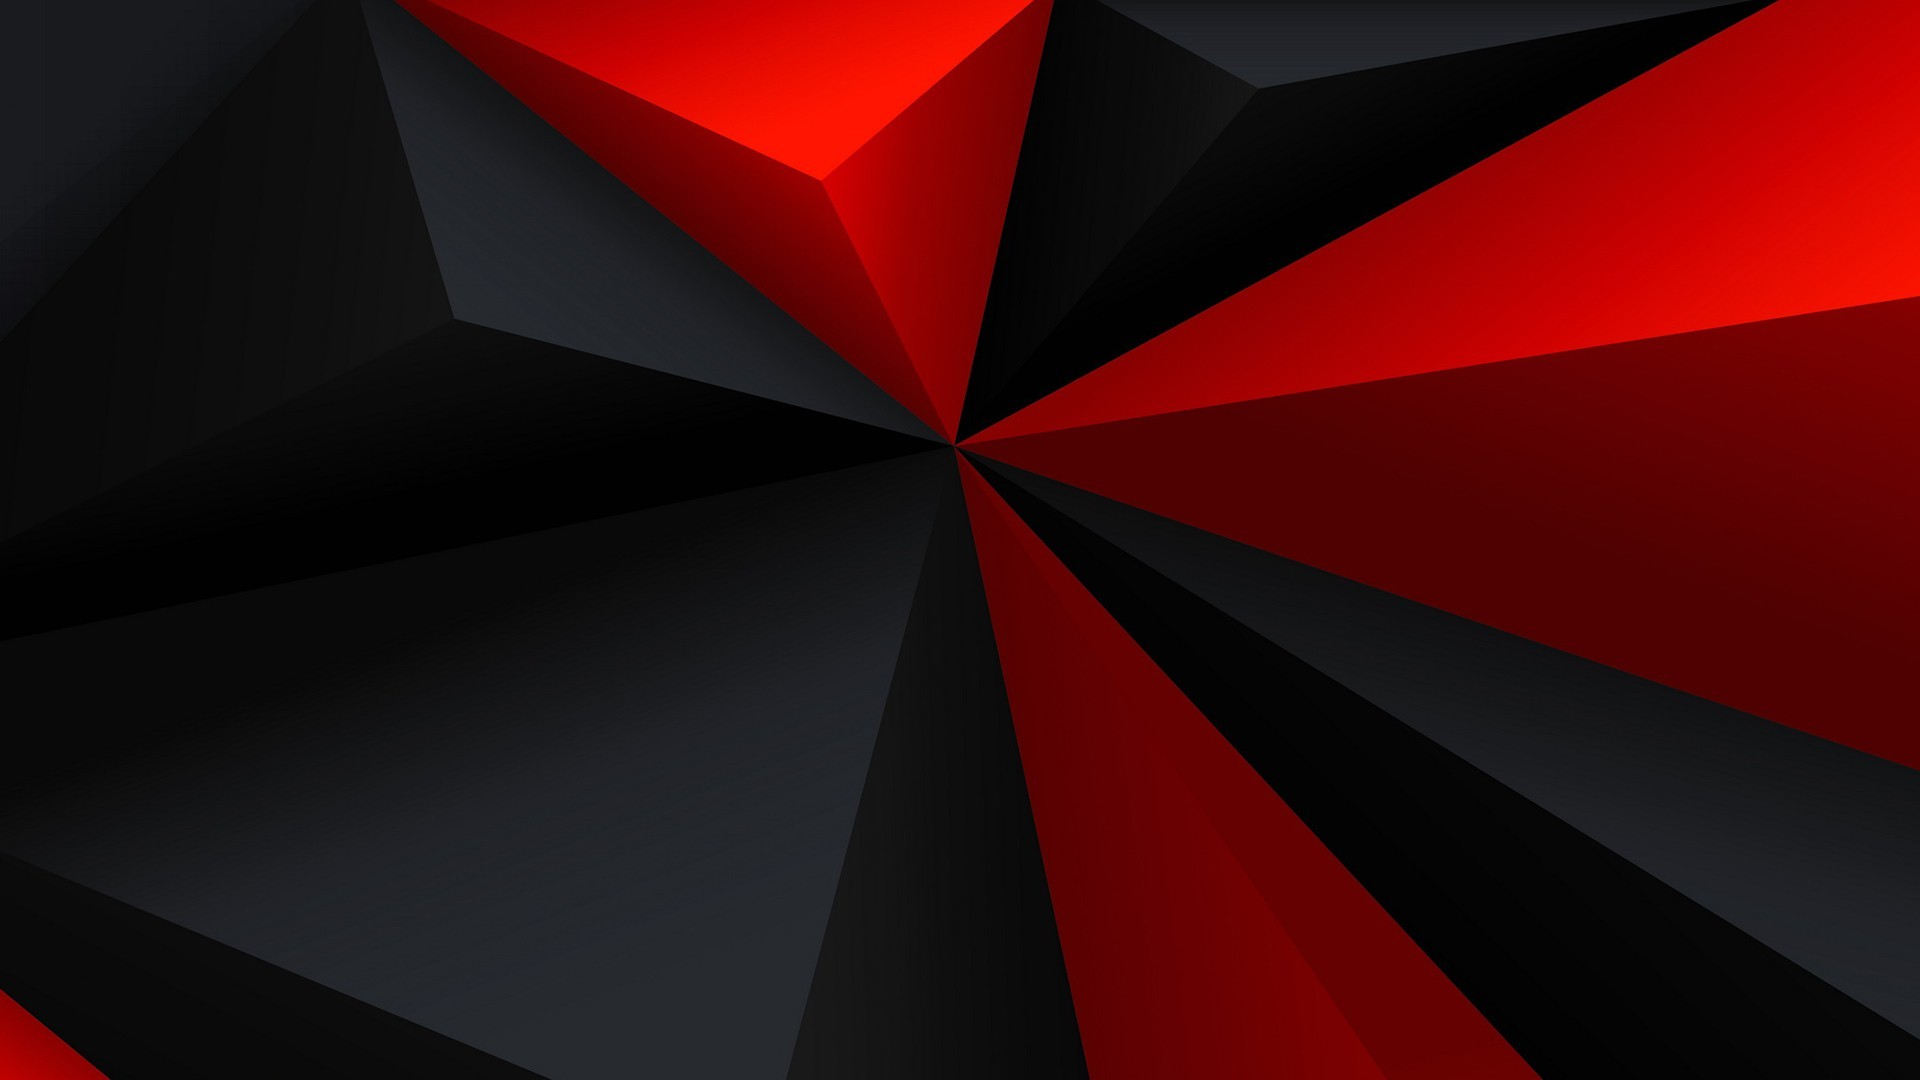 Geometric Triangle Wallpaper (61+ images)